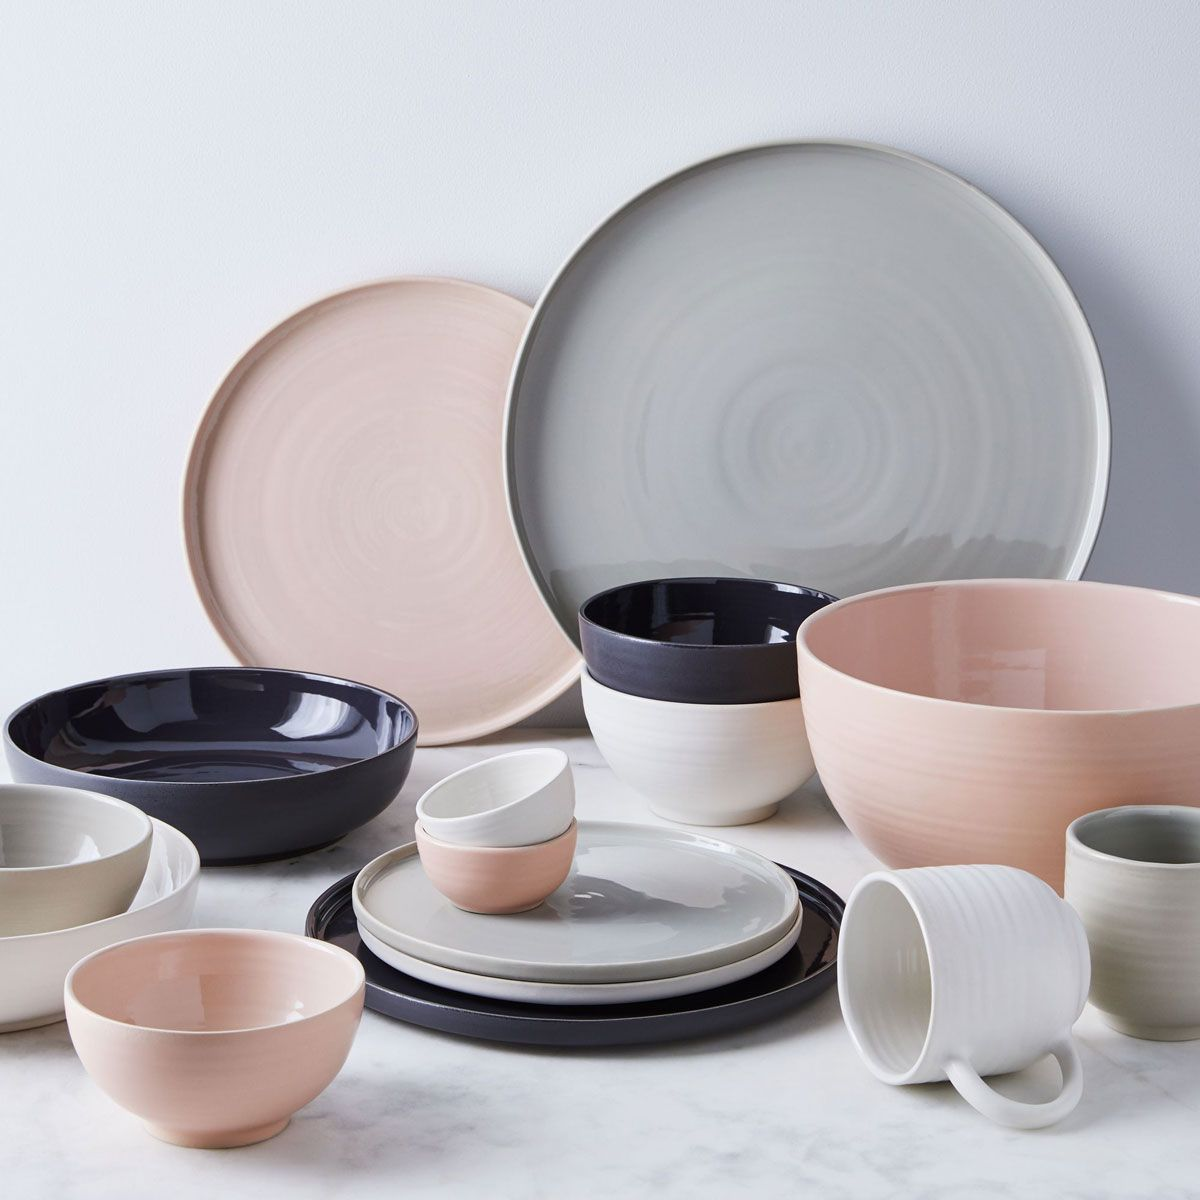 15 Great Ceramic Pieces to Update Your Kitchen and Tabletop